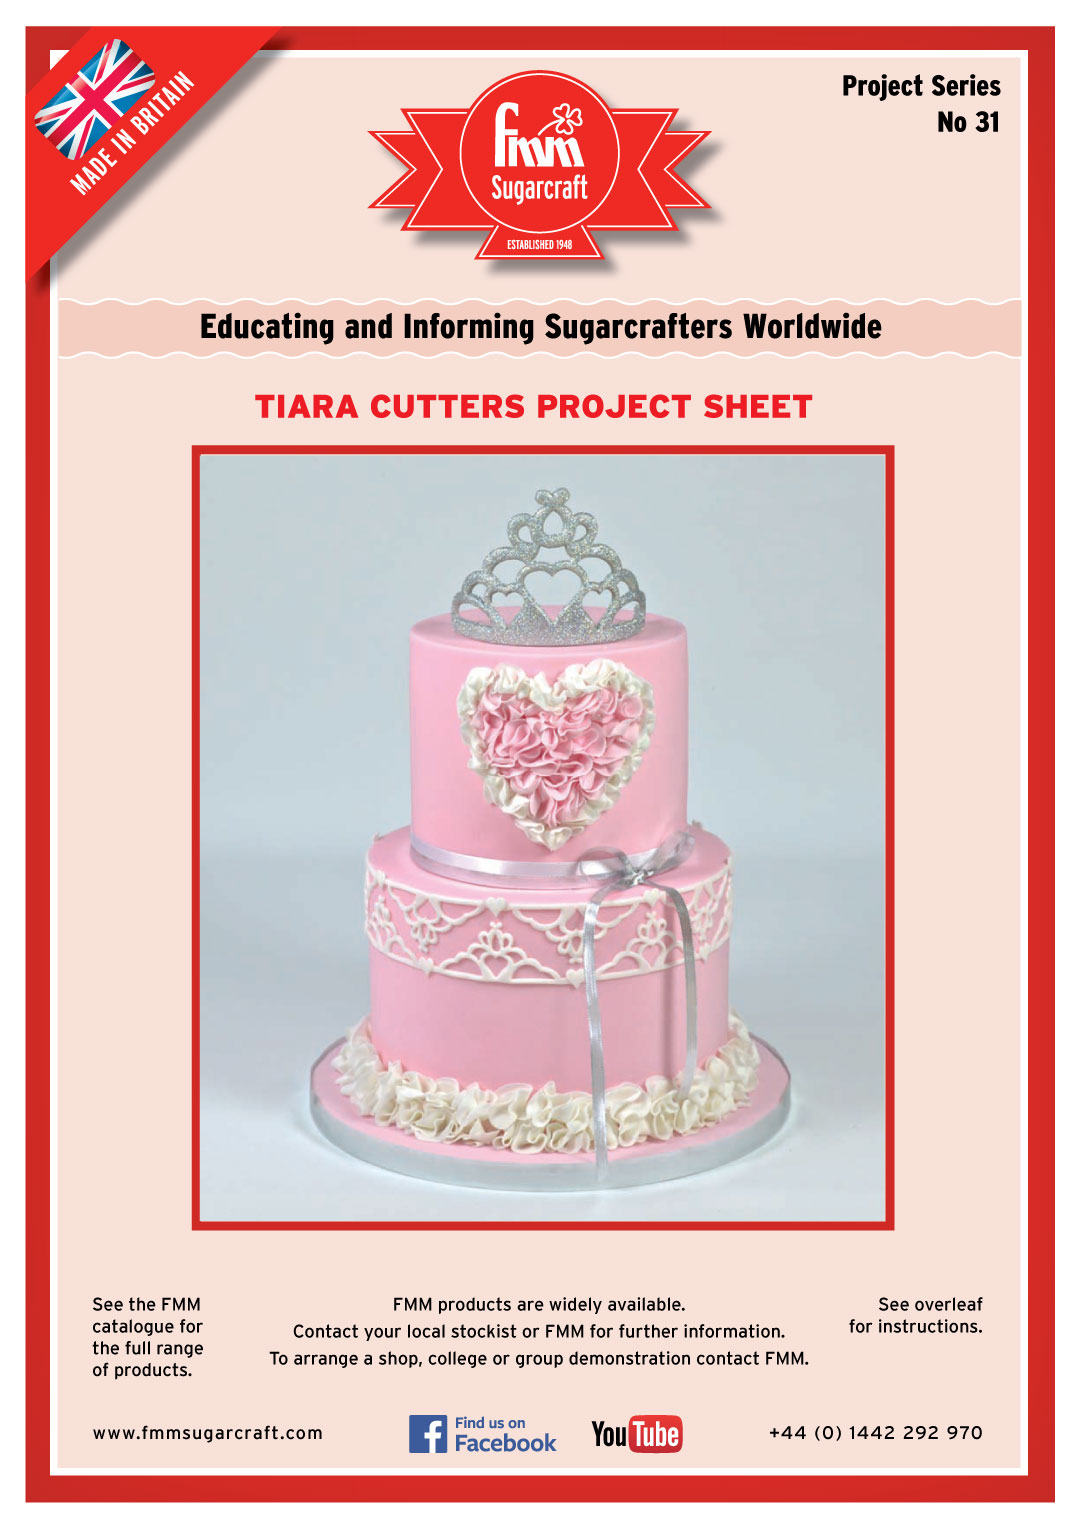 How to use the FMM Tiara Cutters